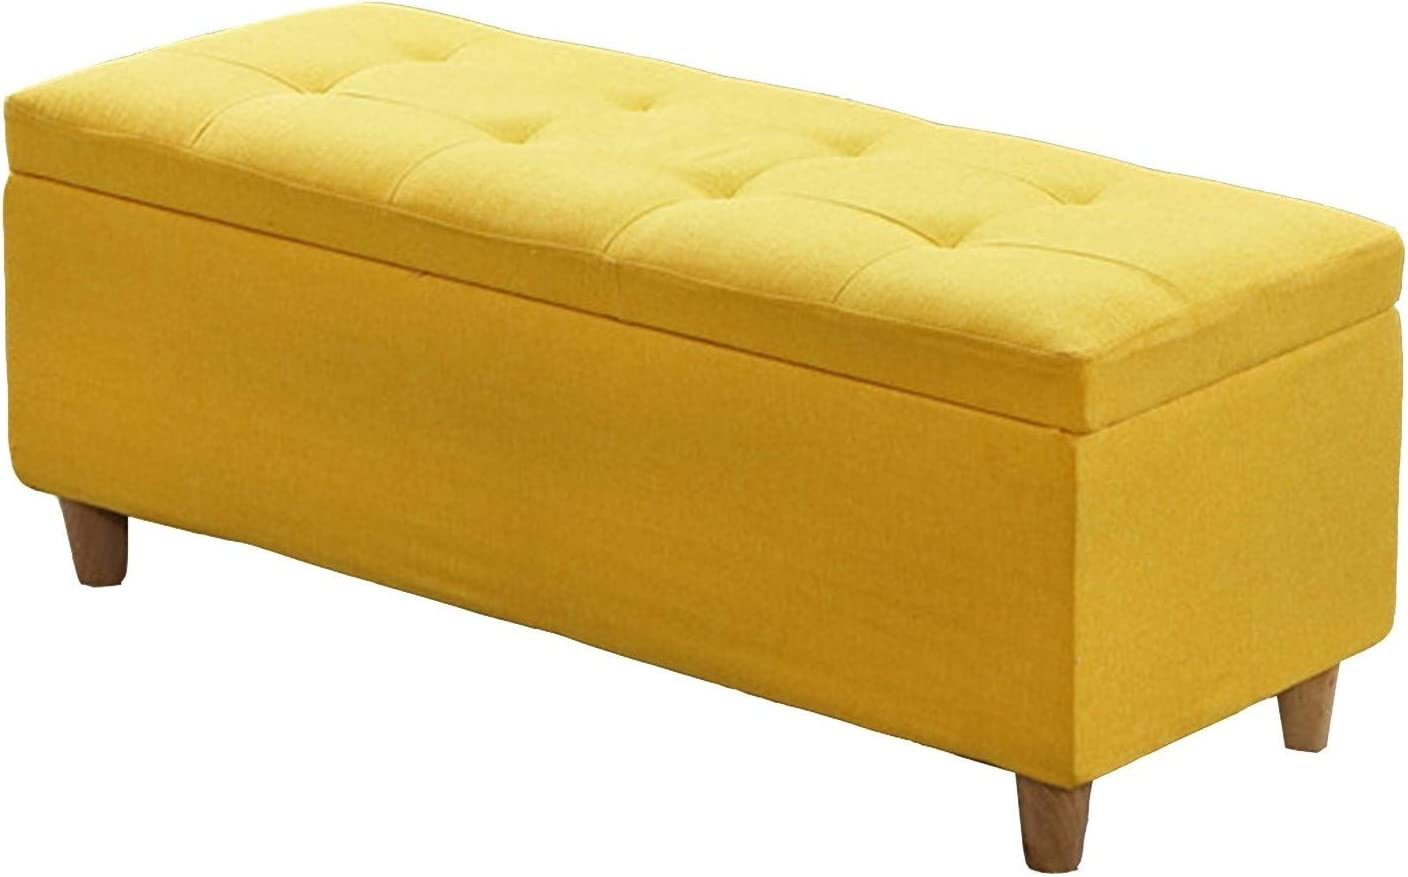 Sofa Stool JQQJ Fabric Bedroom Bench Storage Stool Shoes Bench